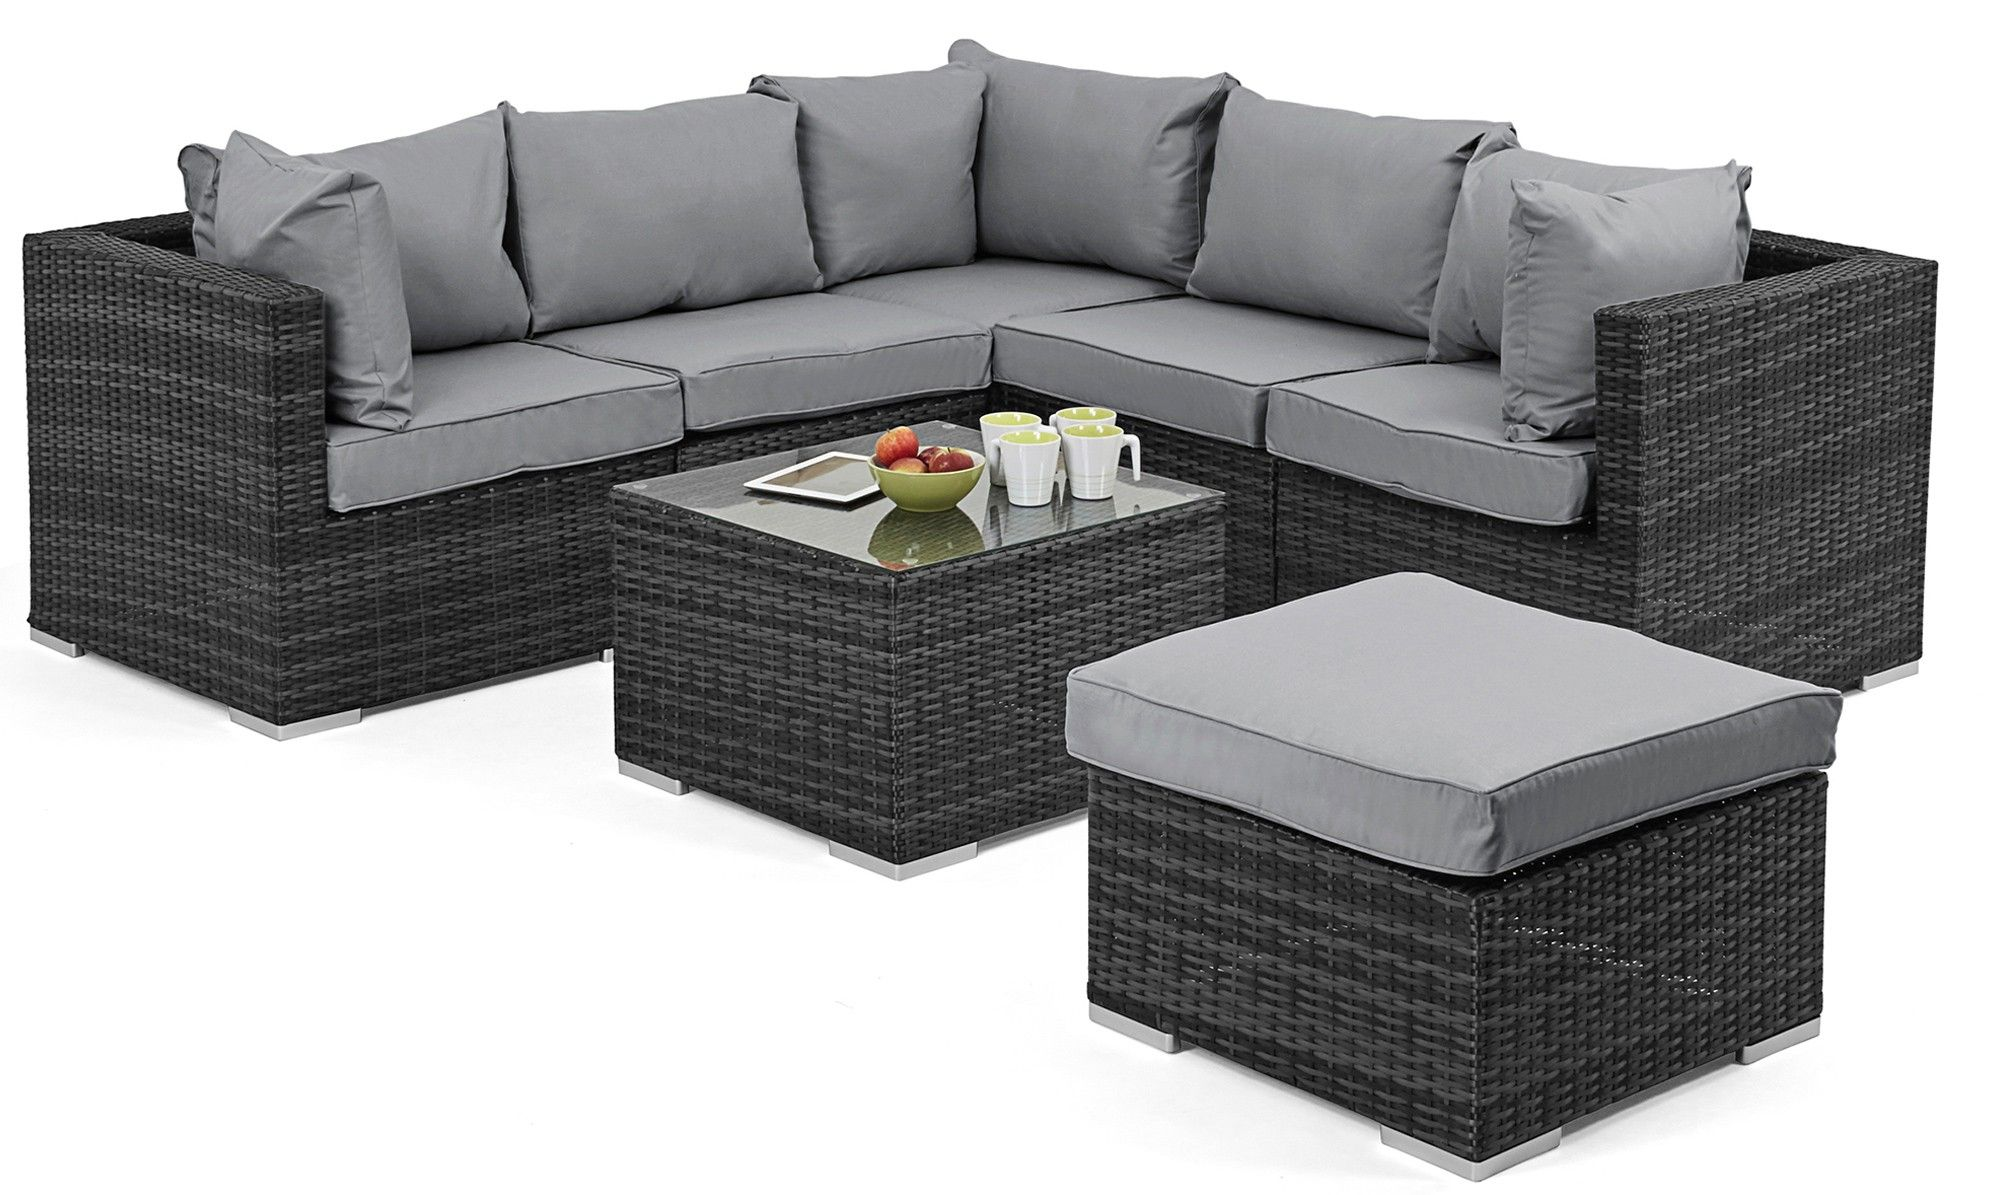 Naples Corner Sofa Grey Rattan Garden Set Rattan Outdoor Furniture Outdoor Furniture Cushions Rattan Corner Sofa